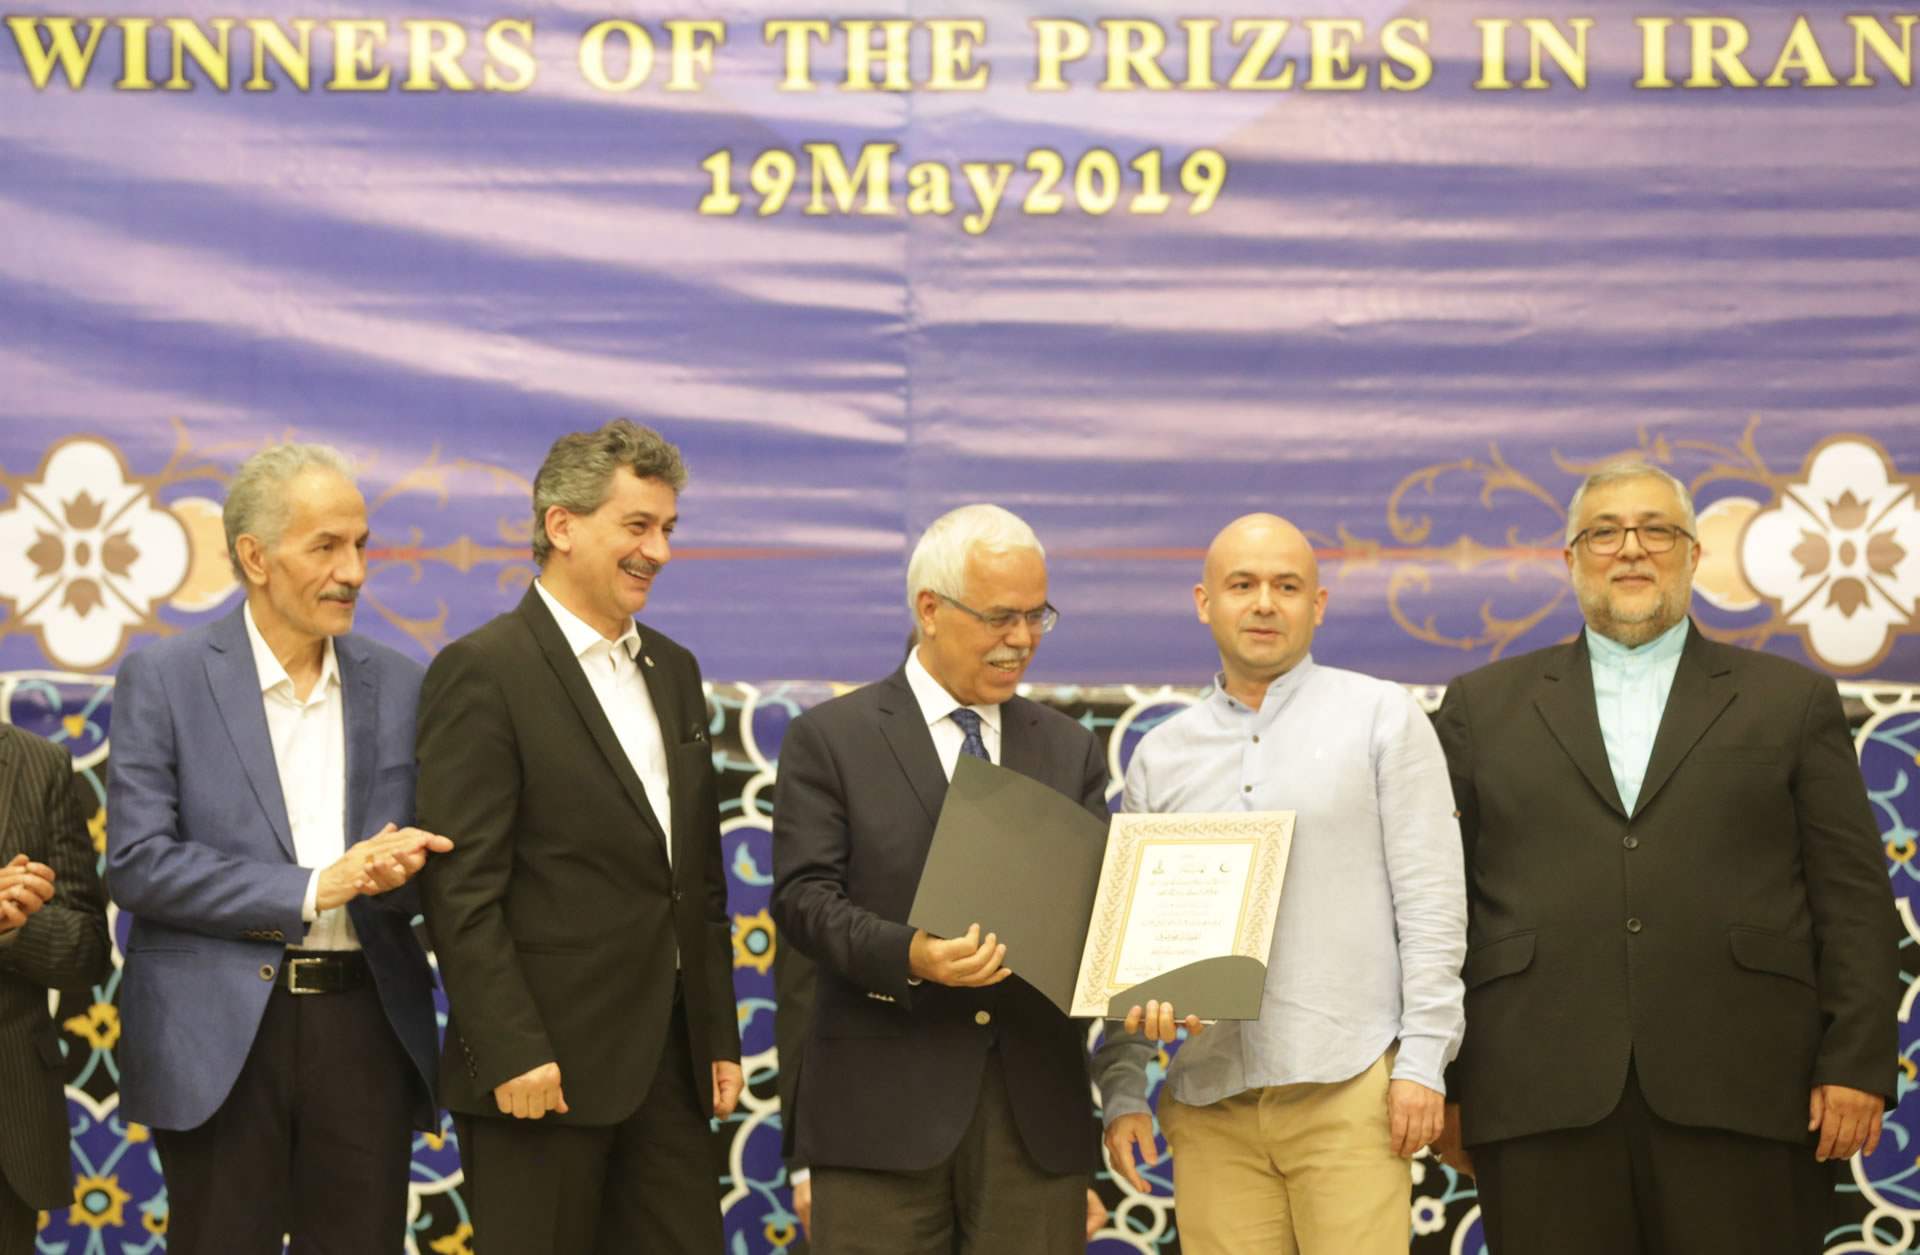 Award ceremony for the 11th Calligraphy Competition prize winners from Iran